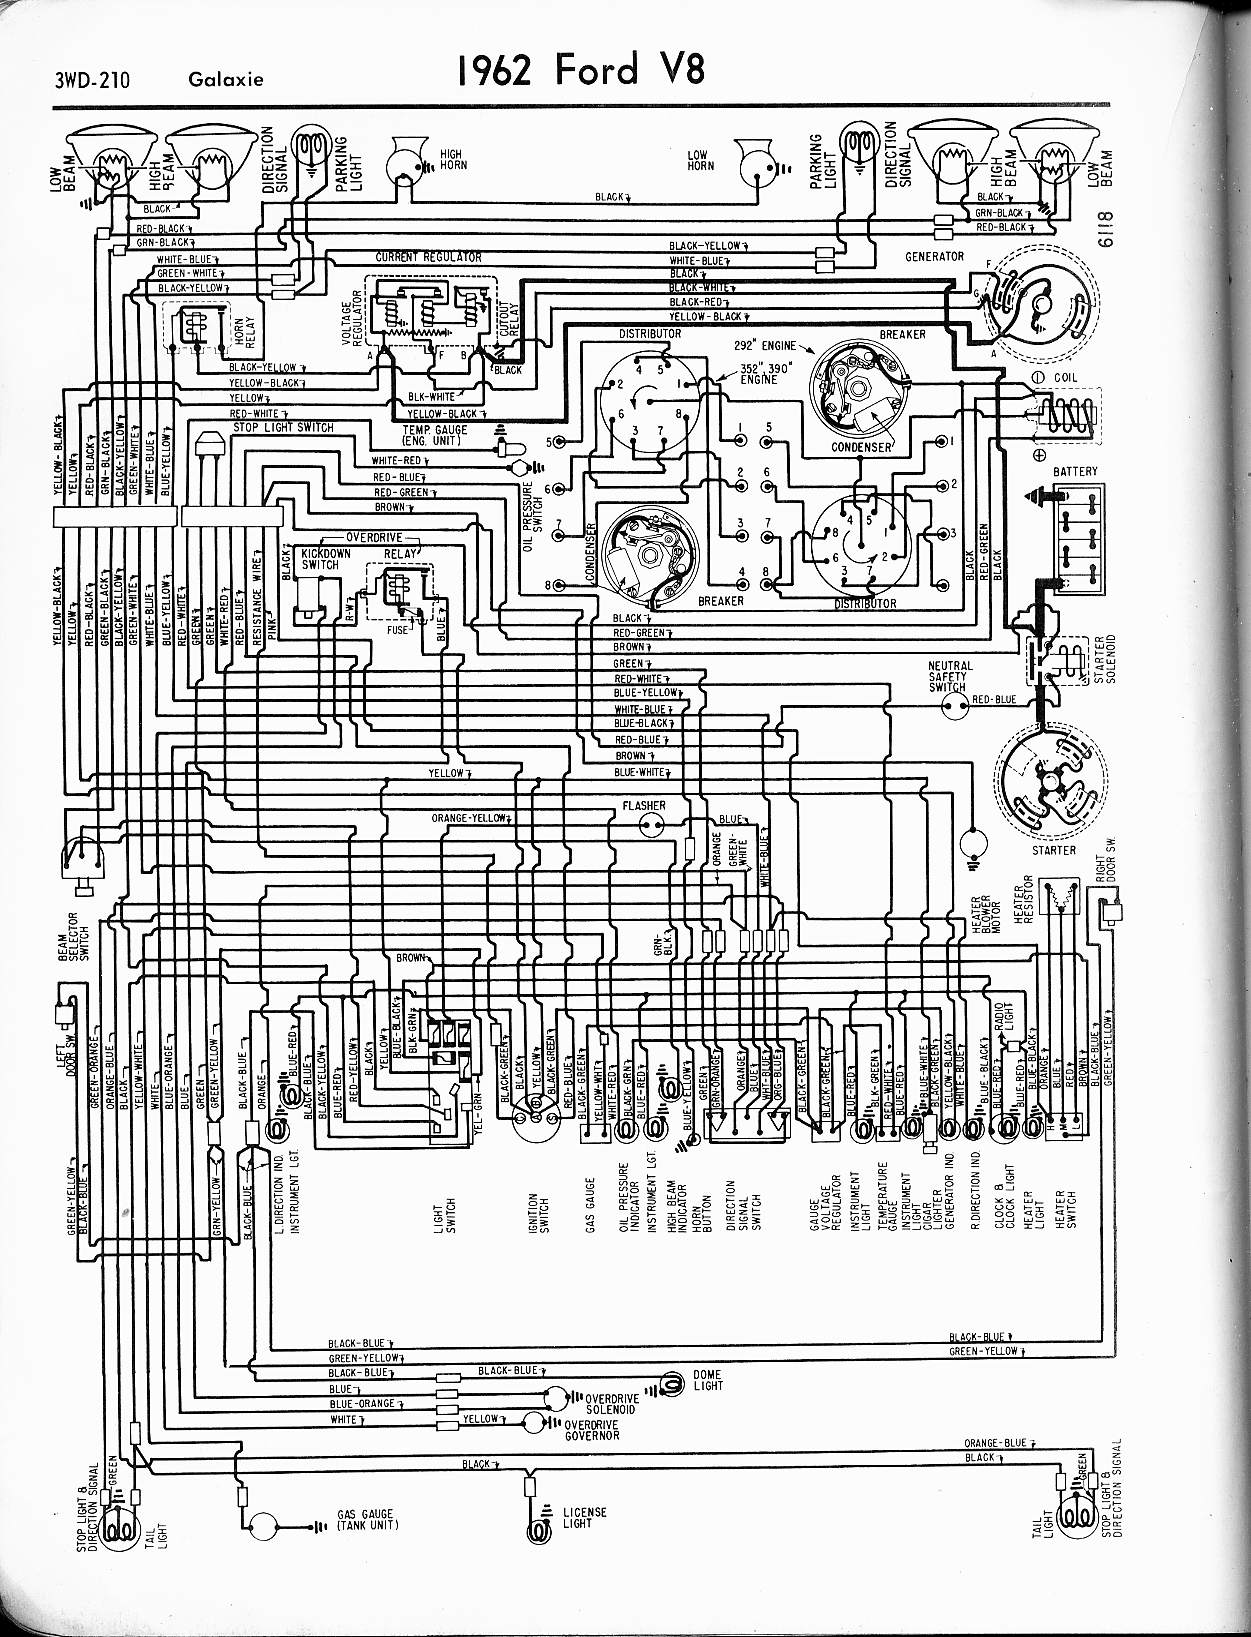 hight resolution of 1967 ford galaxie wiring diagram wiring schematic data 1987 ford f 250 wiring diagram 1967 ford f250 wiring diagram